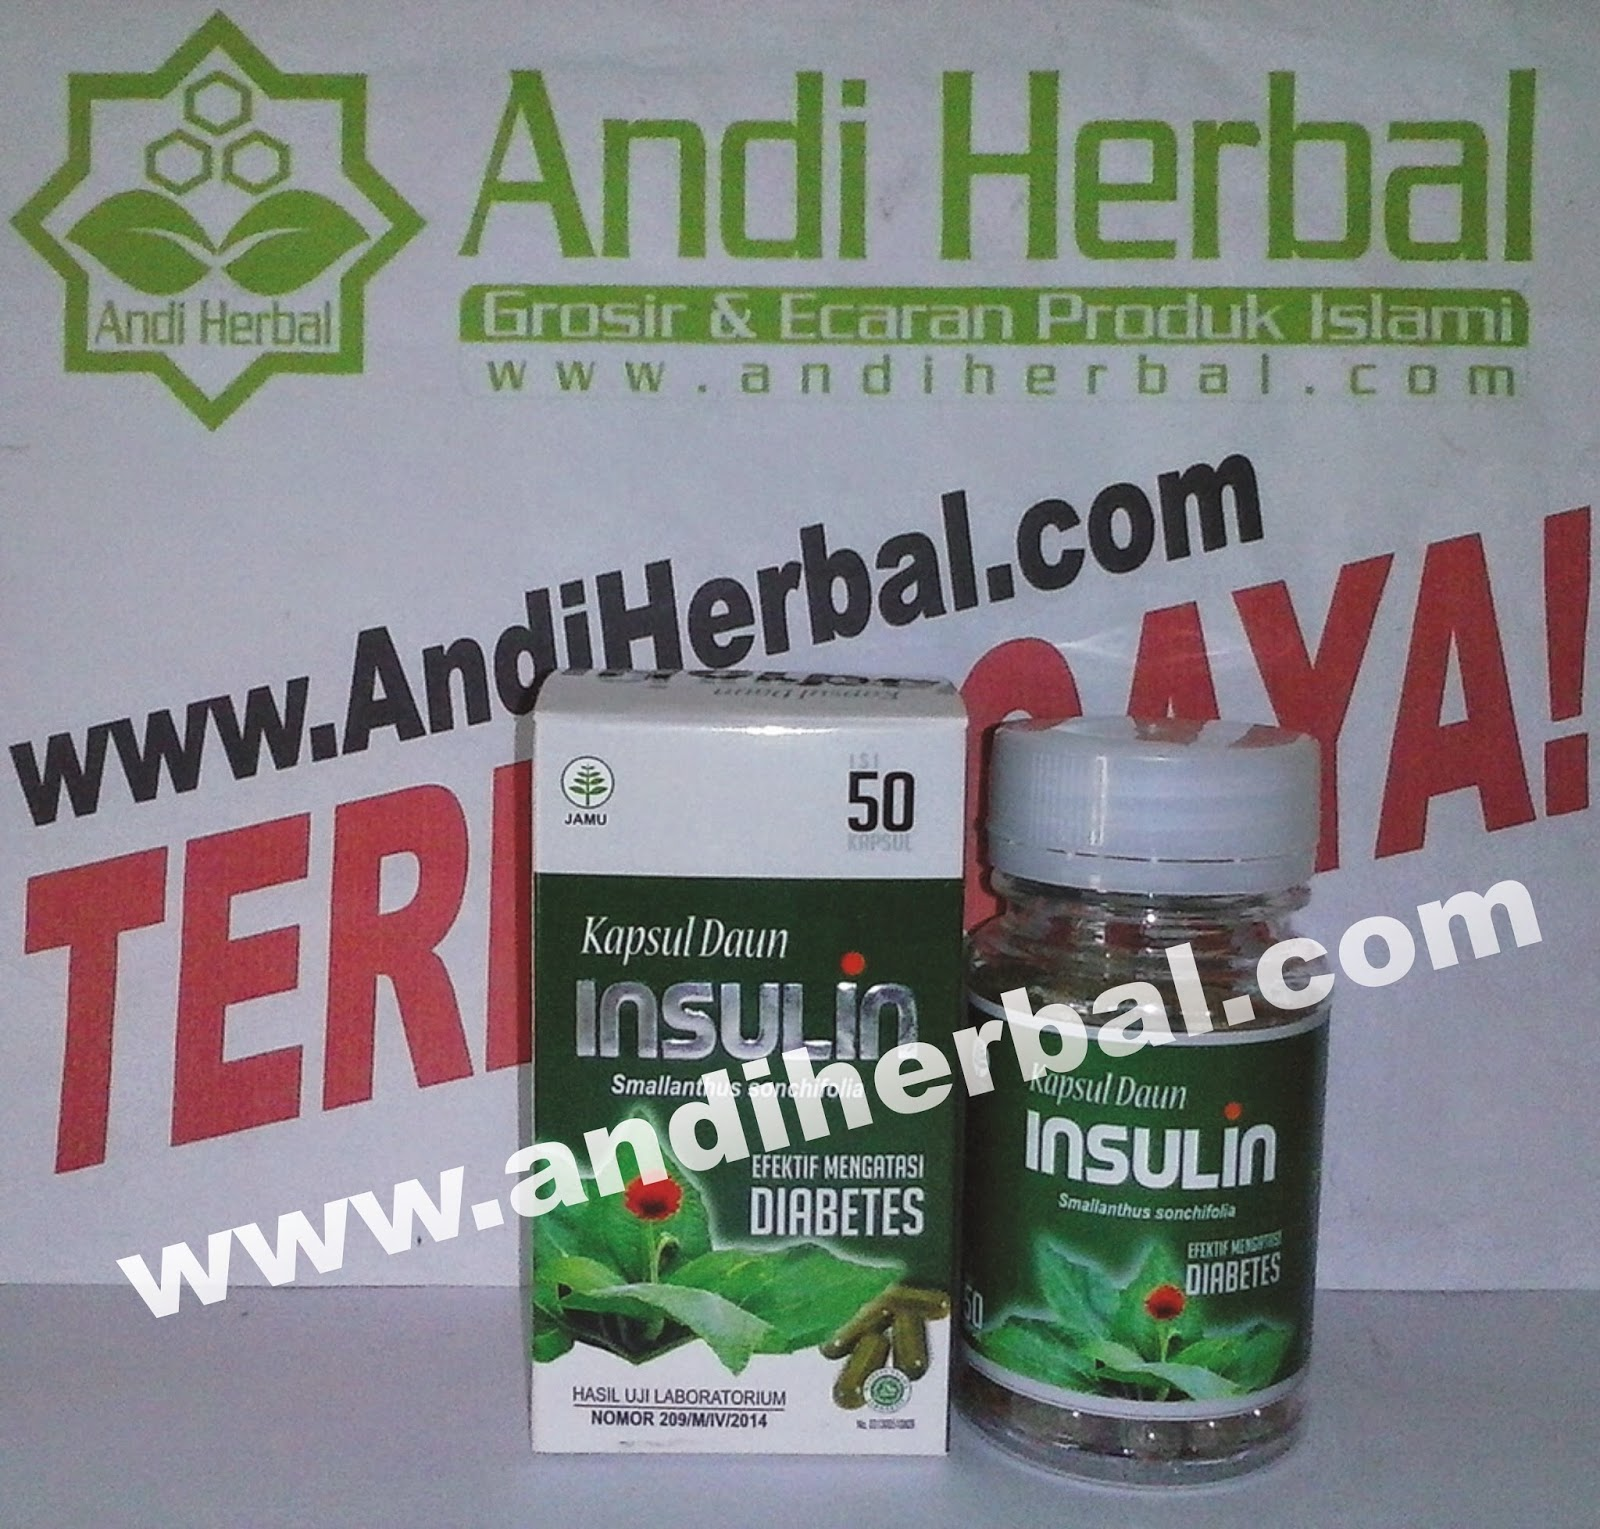 Kapsul Daun Insulin Herbal Diabetes Andiherbal.com